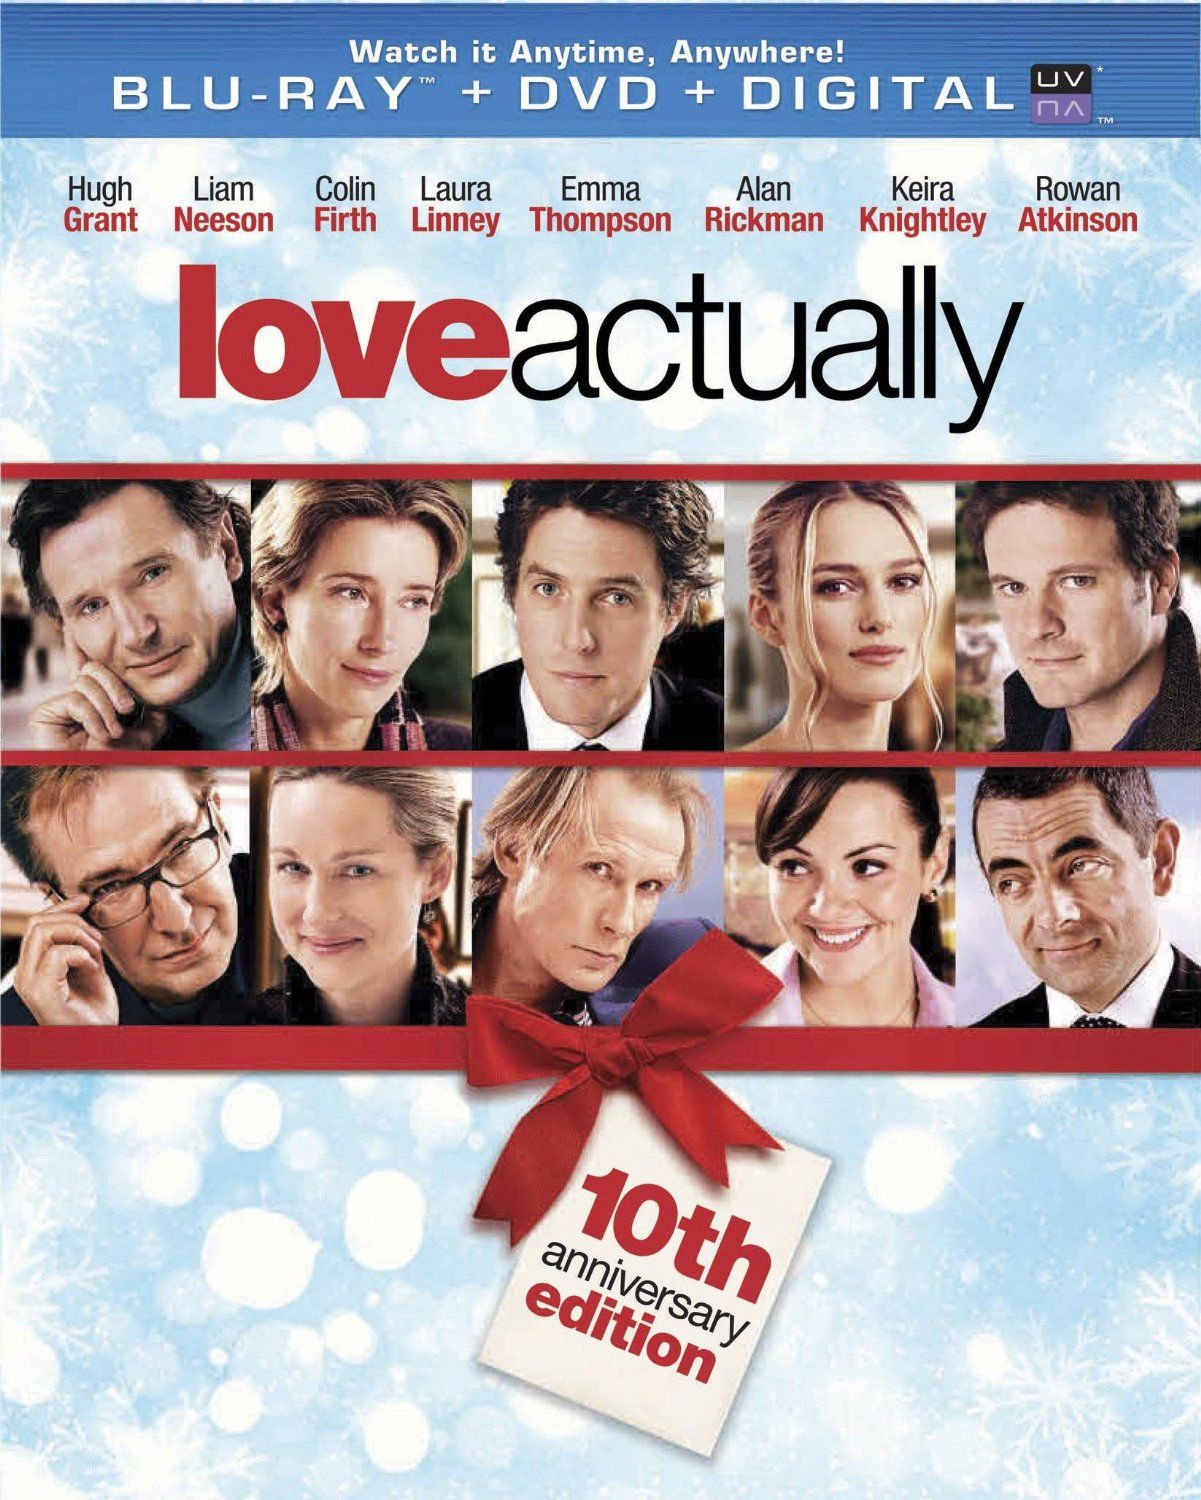 Love Actually - 10th Anniversary Edition (2003) ($12.96) http://www.amazon.com/exec/obidos/ASIN/B00EIBO8UK/hpb2-20/ASIN/B00EIBO8UK Most of the other stories were very interesting and we end up really liking the characters. - This movie has it all, you will laugh, cry, be in suspense, and by the end realize that love actually is all around. - Movie and cast are great!